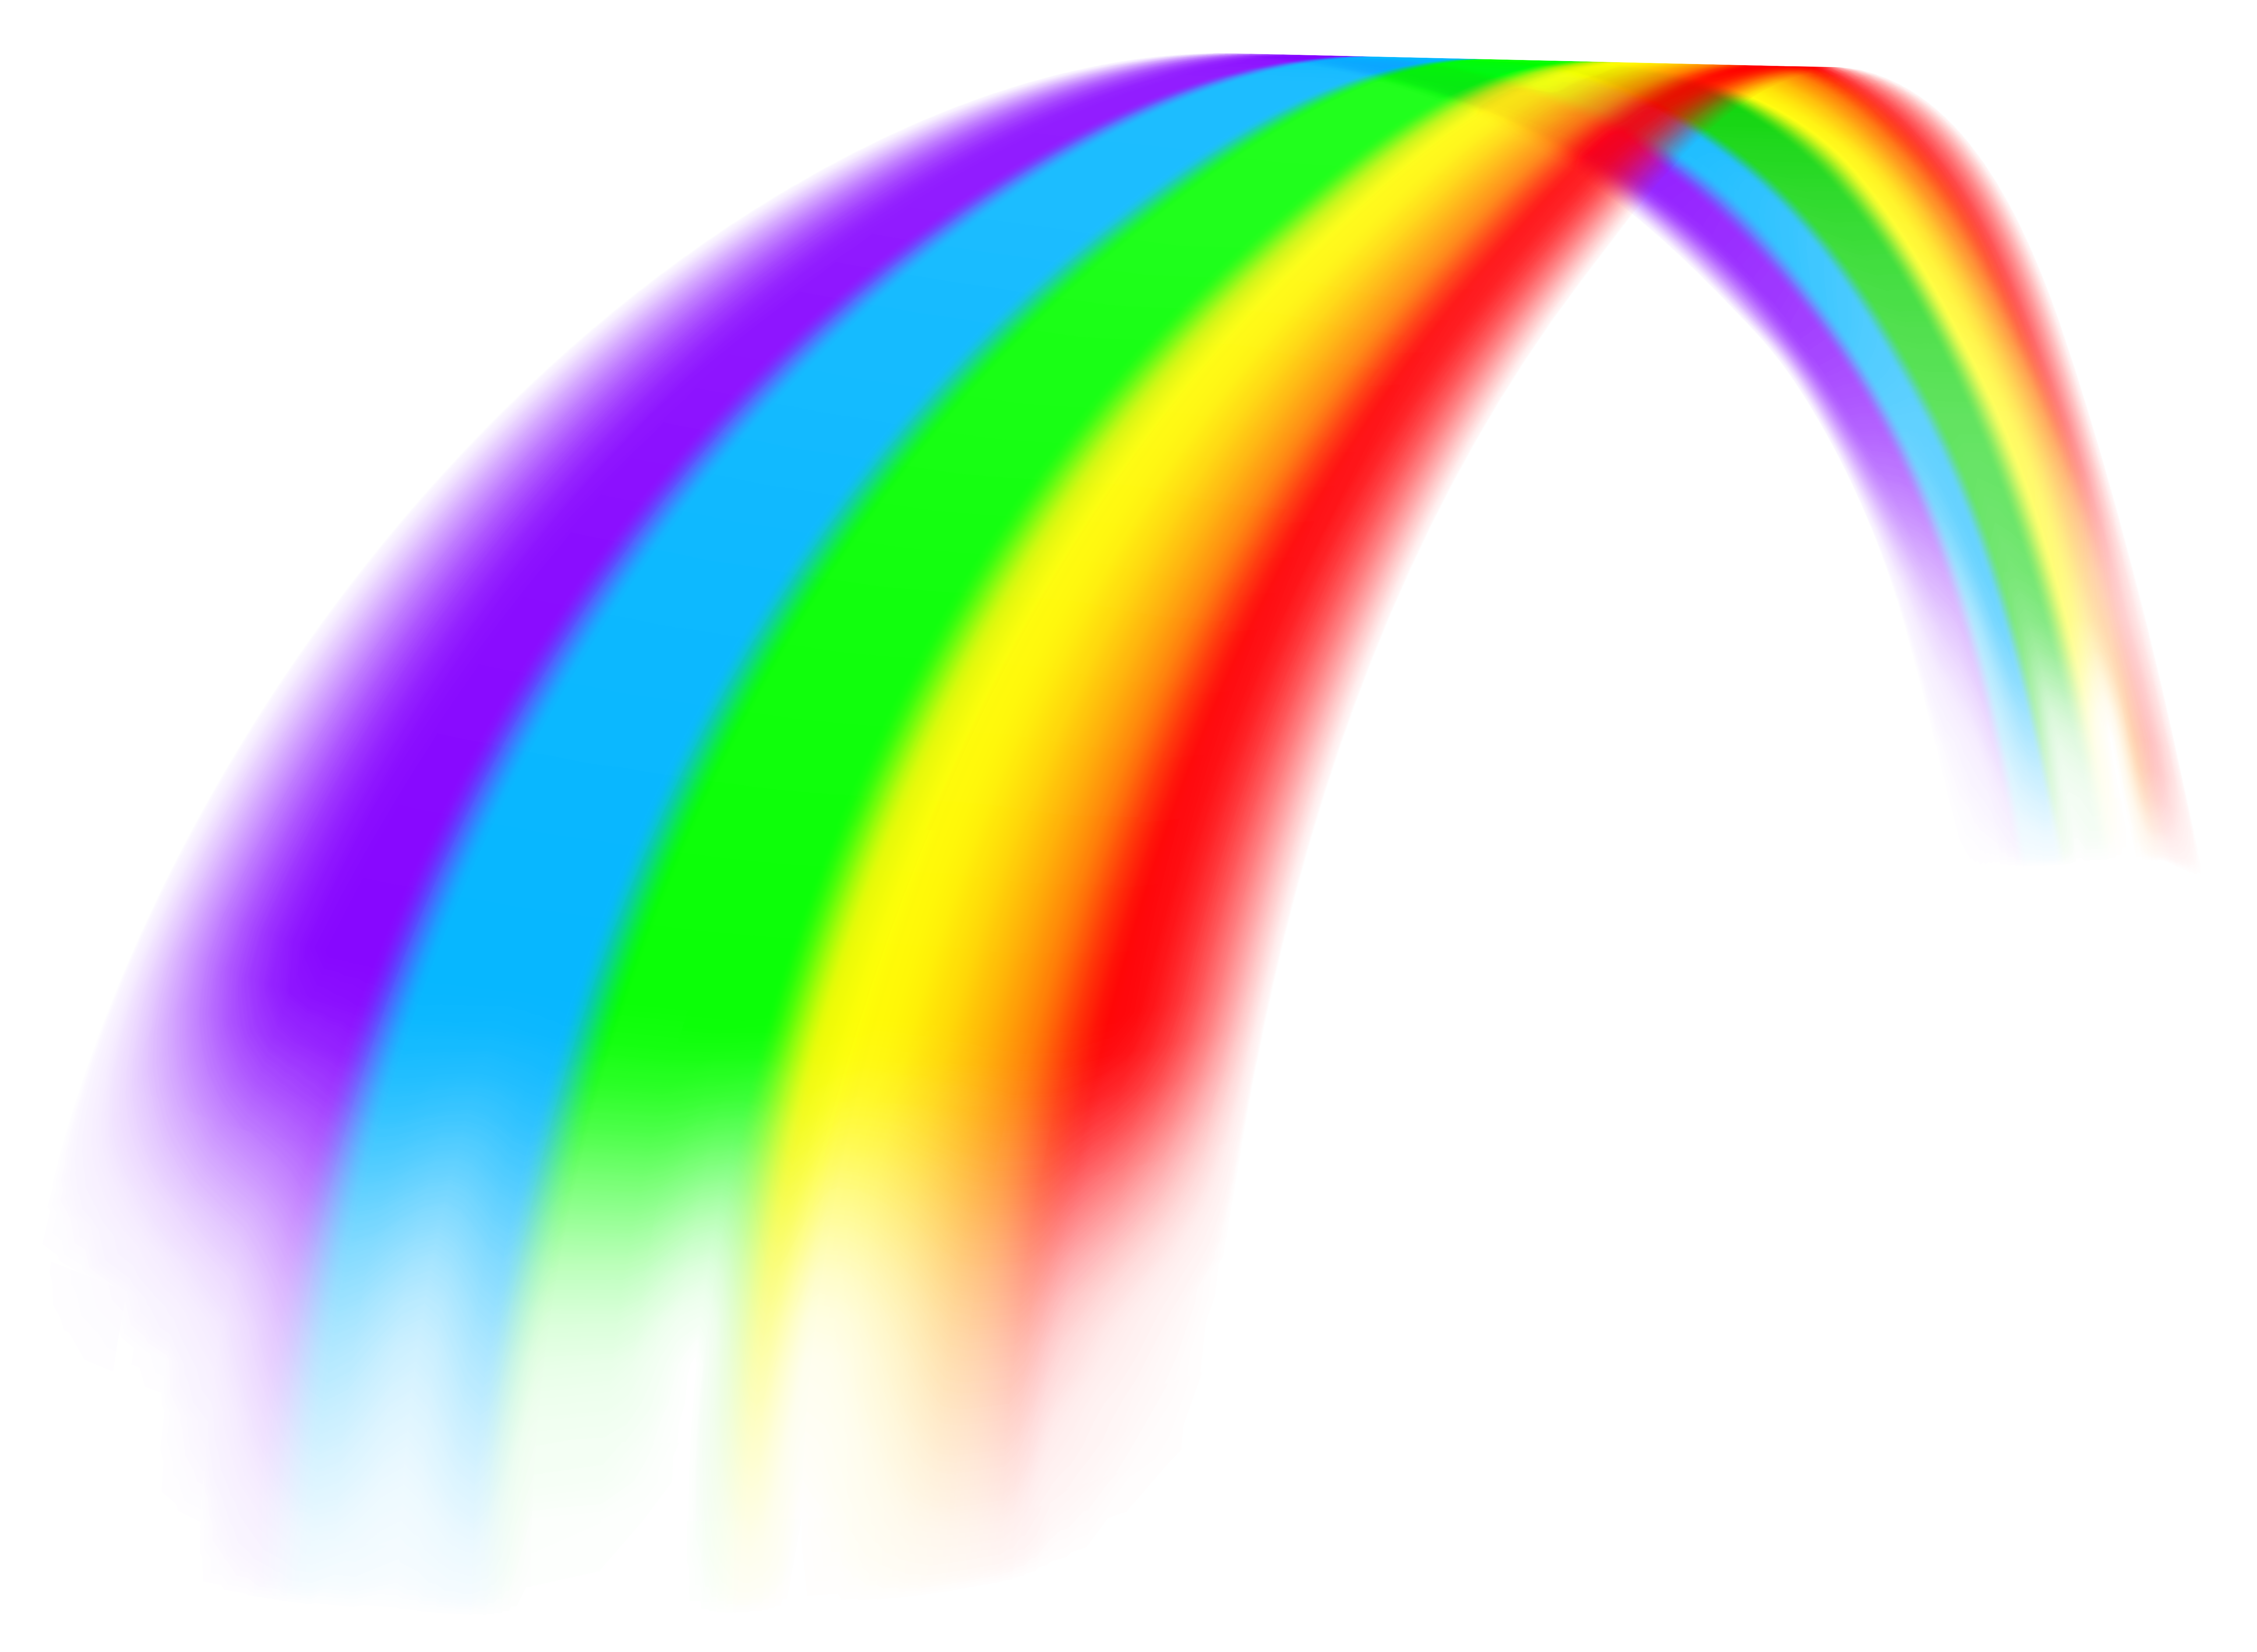 Rainbow Png - ClipArt Best